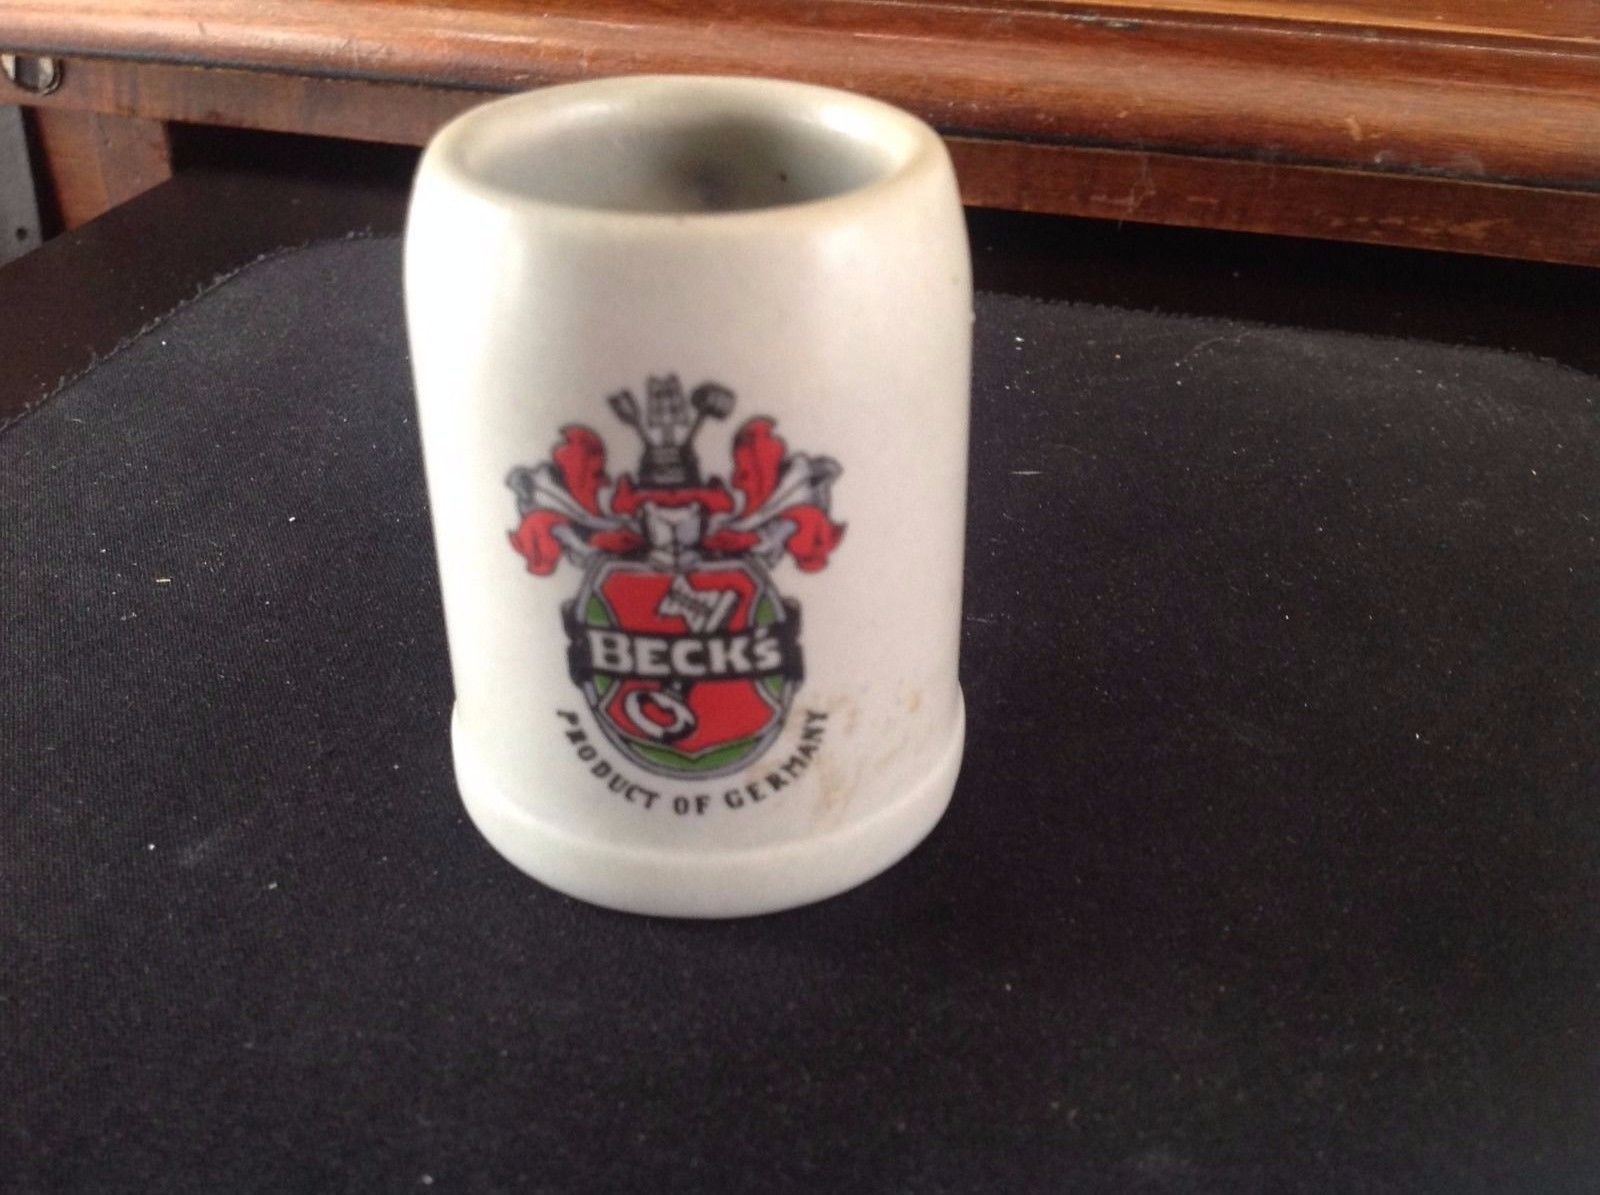 Primary image for Beck's Miniature Beer Stein Shot Glass Stoneware Mug